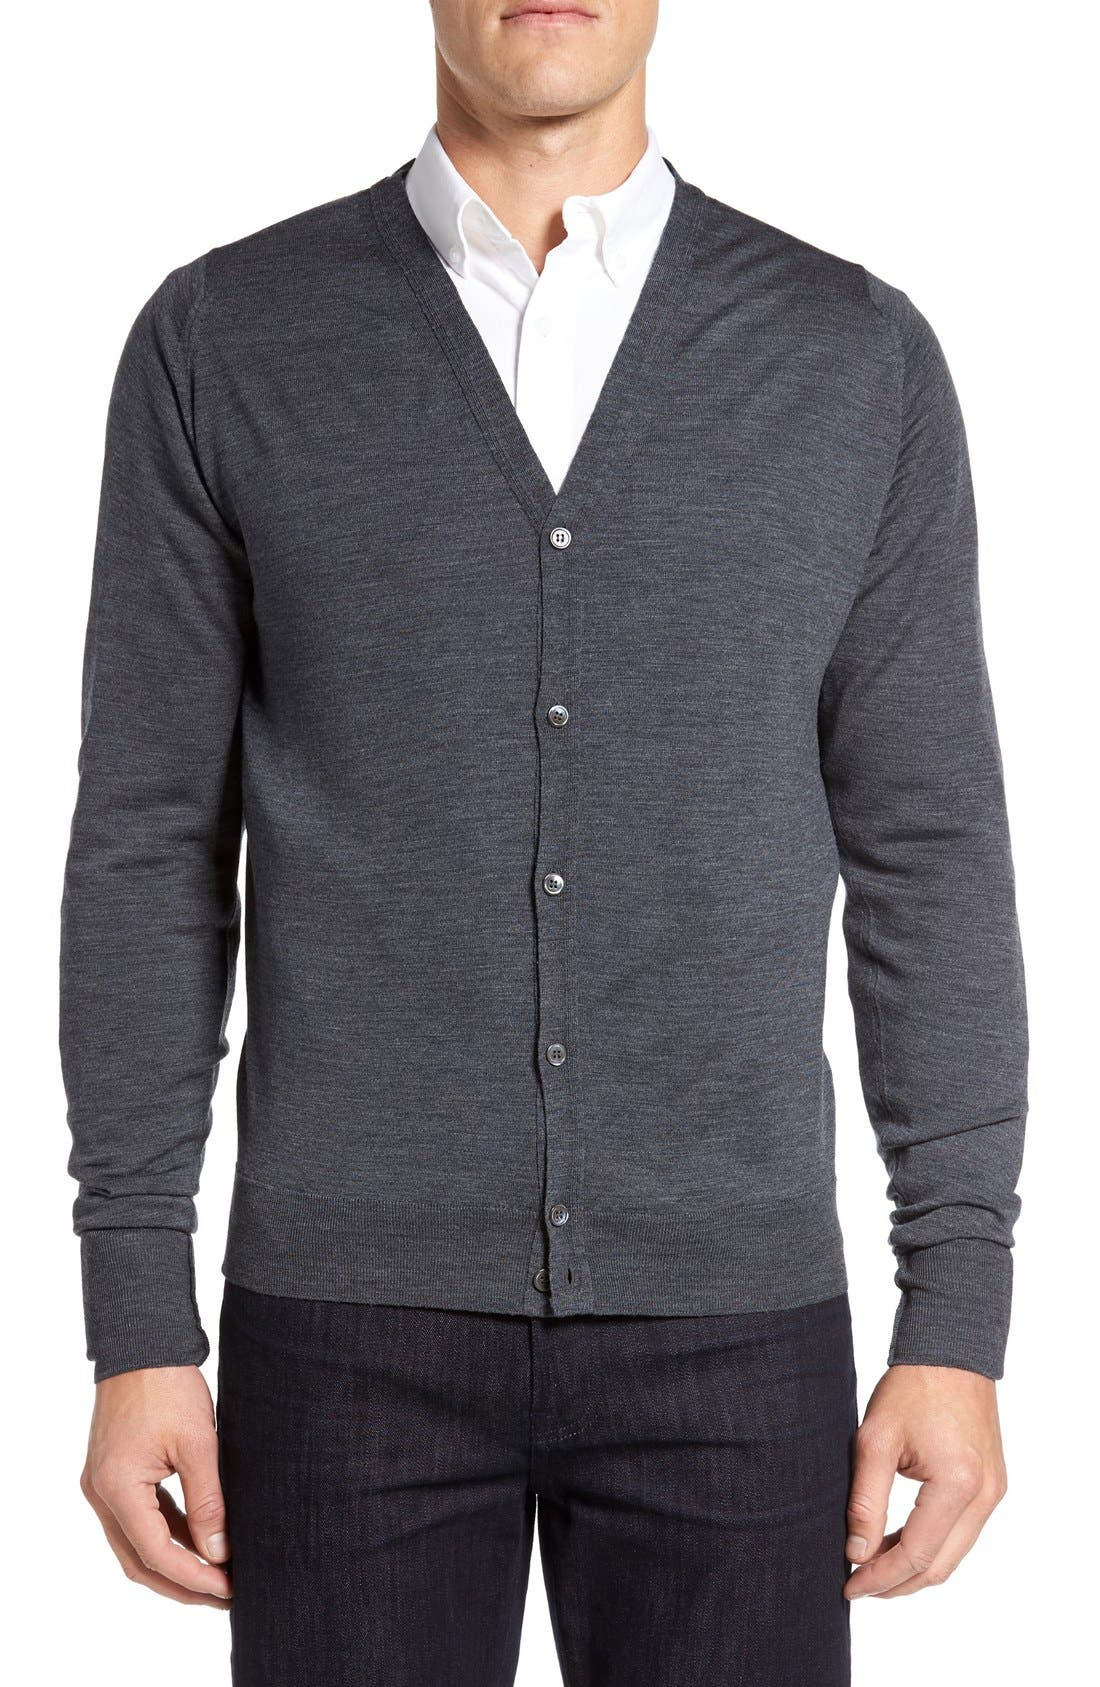 John Smedley 'Bryn' Easy Fit Wool Button Cardigan